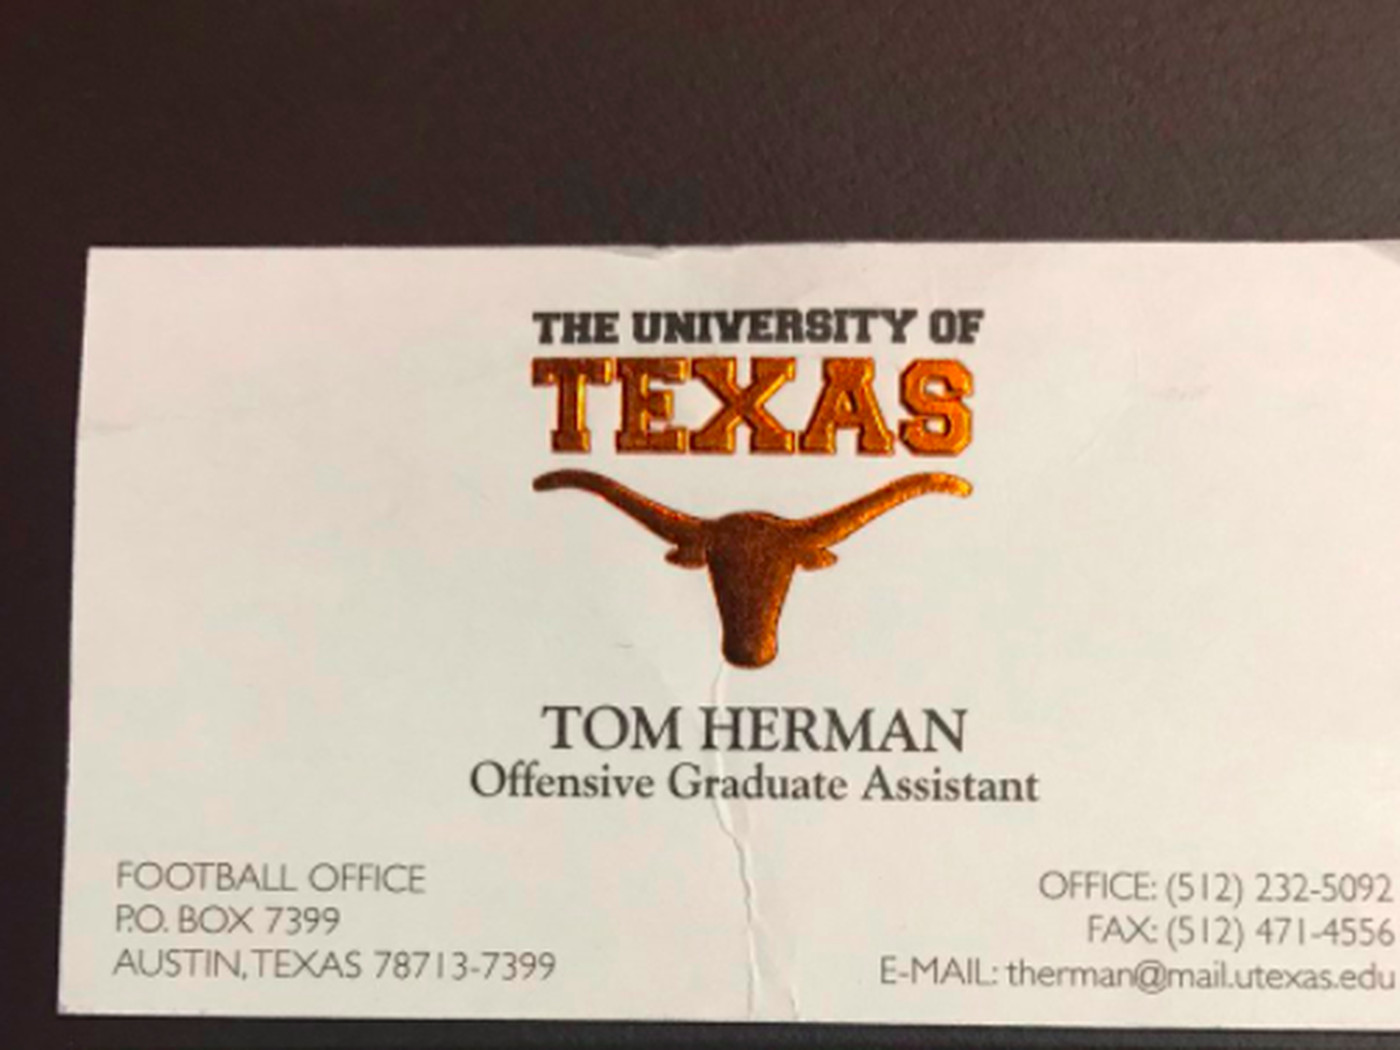 Tom herman shows hard work pays off with his two texas business tom herman shows hard work pays off with his two texas business cards sbnation colourmoves